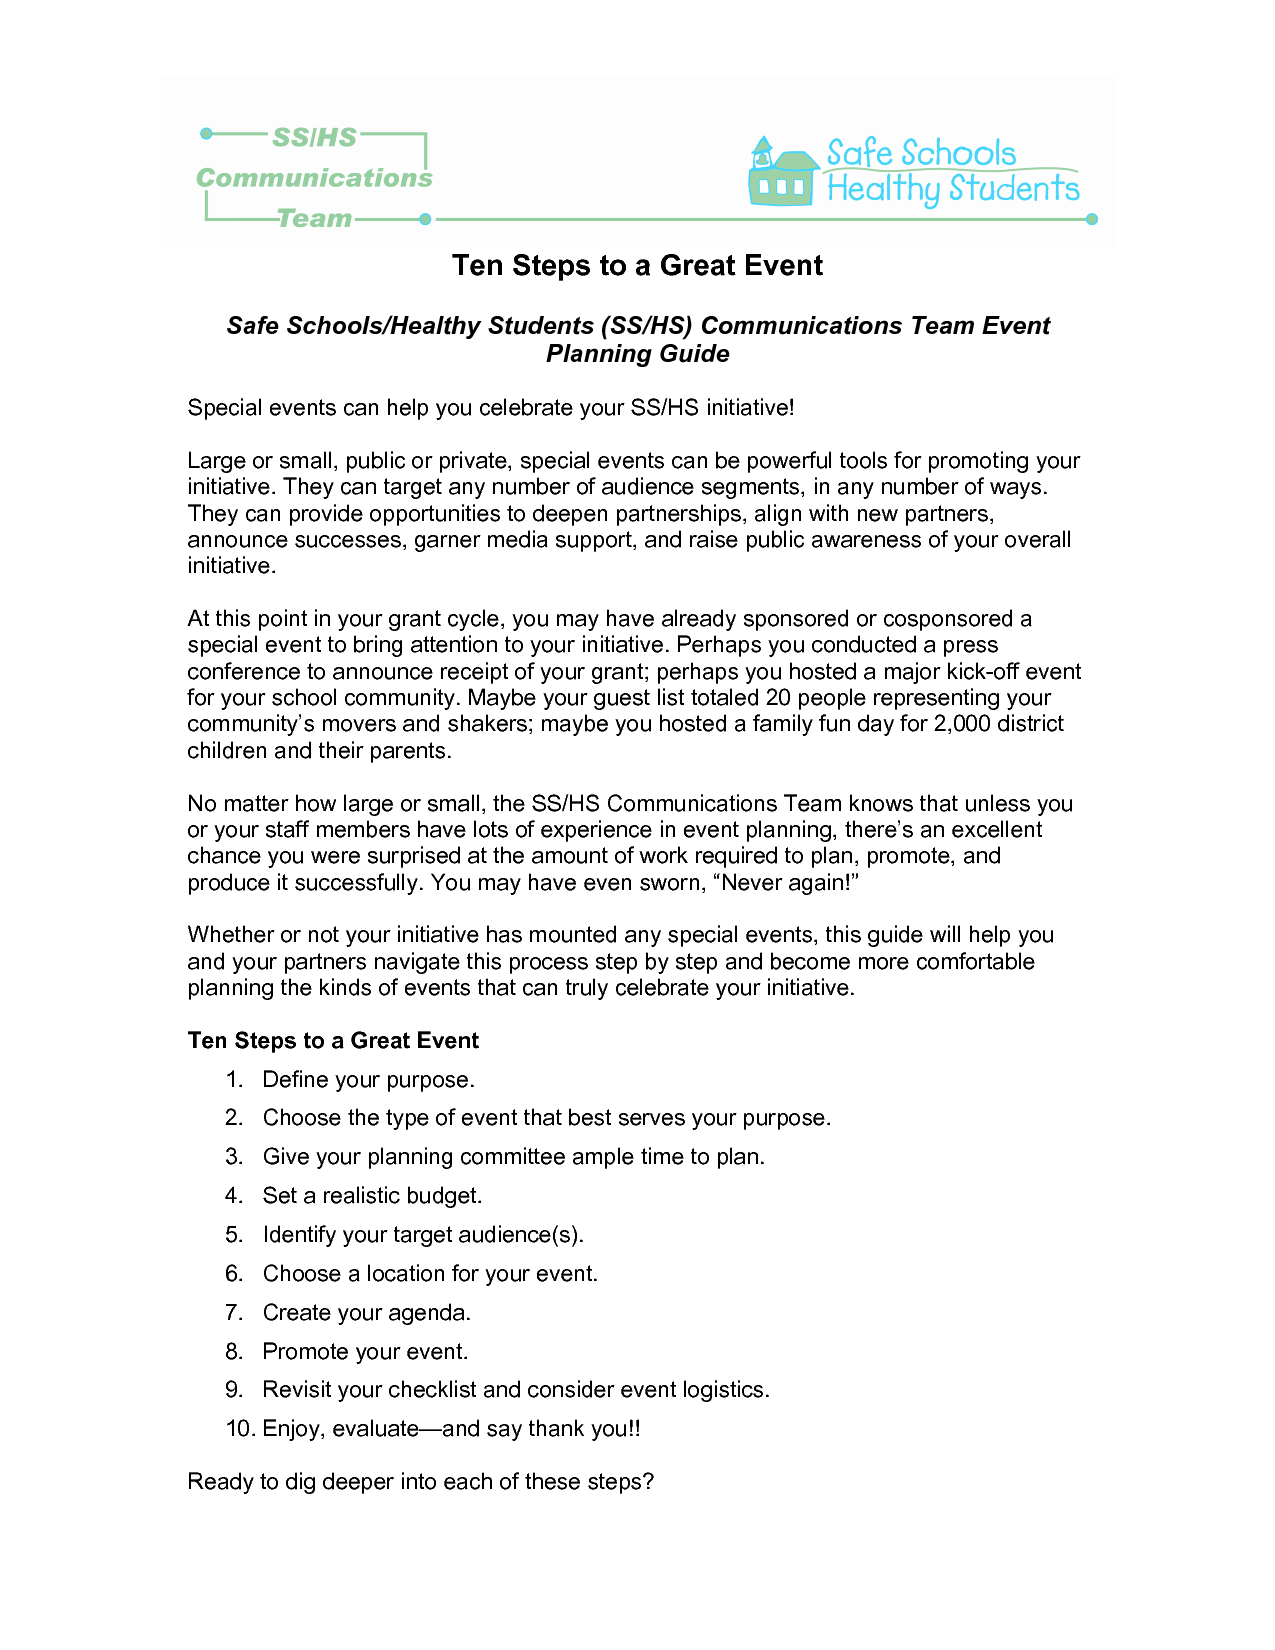 event planning business plan sample pdf tem | Rottenraw : Rottenraw